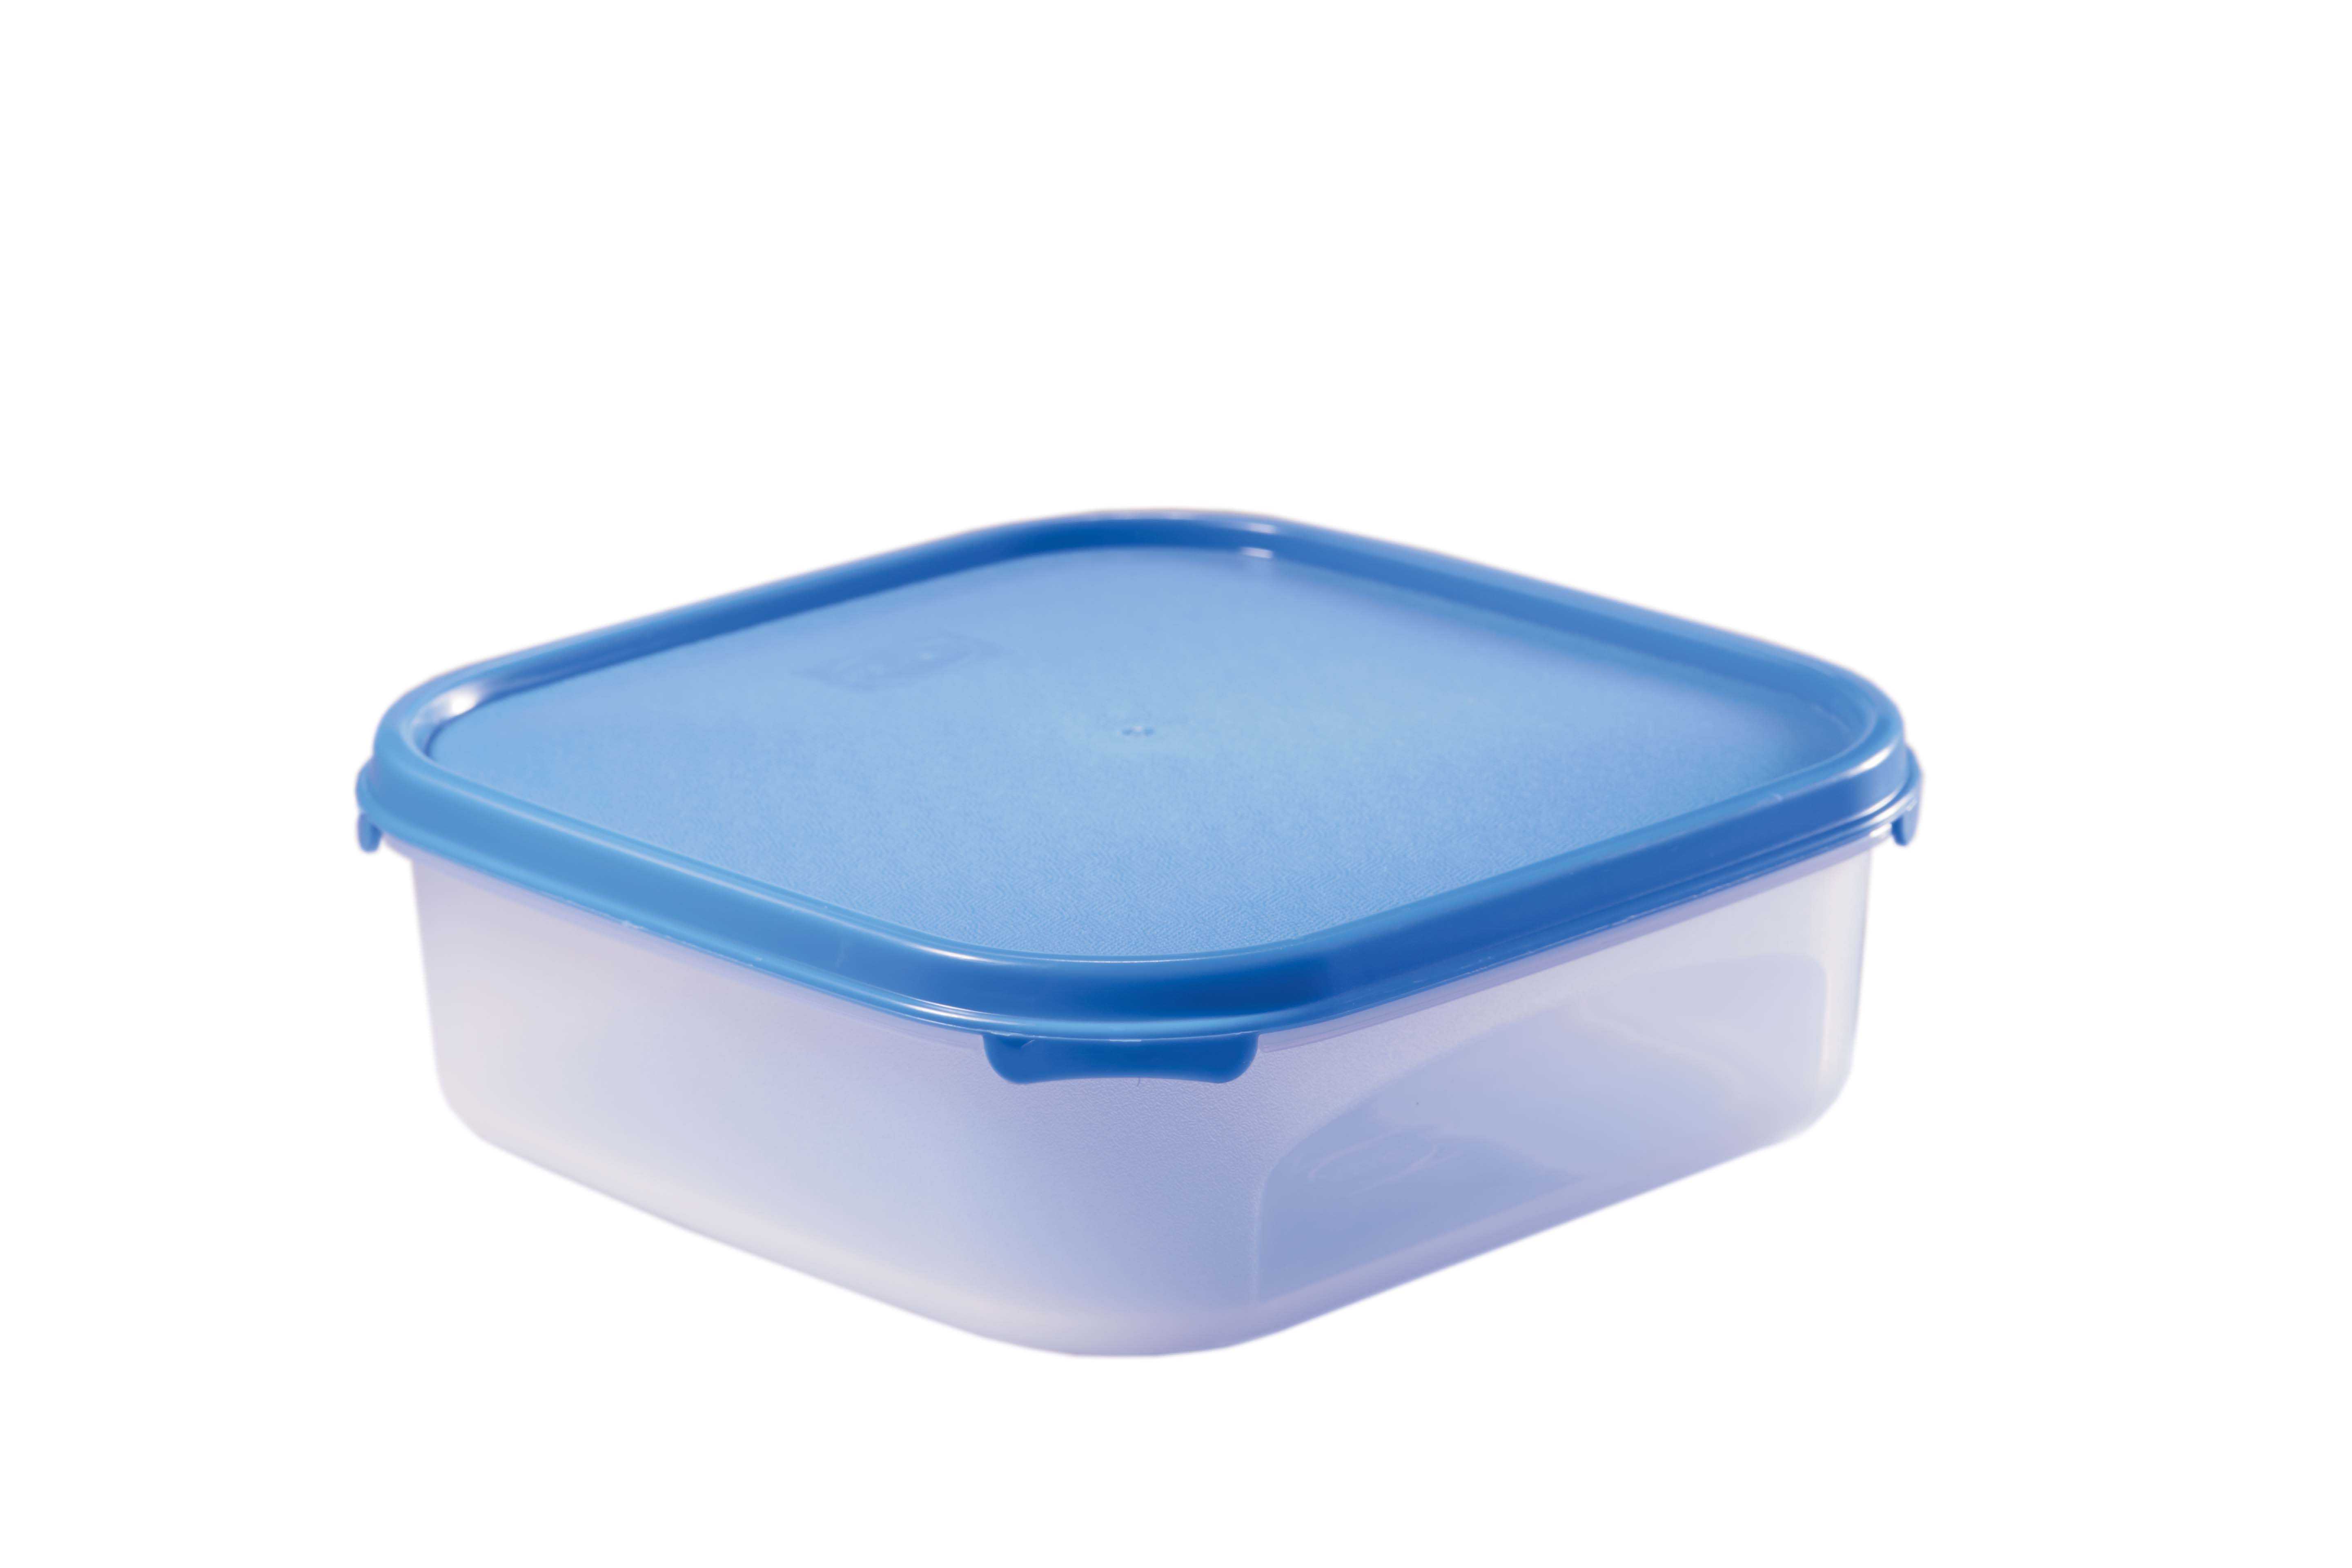 Magic Seal Square 1.2 Blue Polyproplene Containers in Transparent With Blue Lid Colour by Living Essence